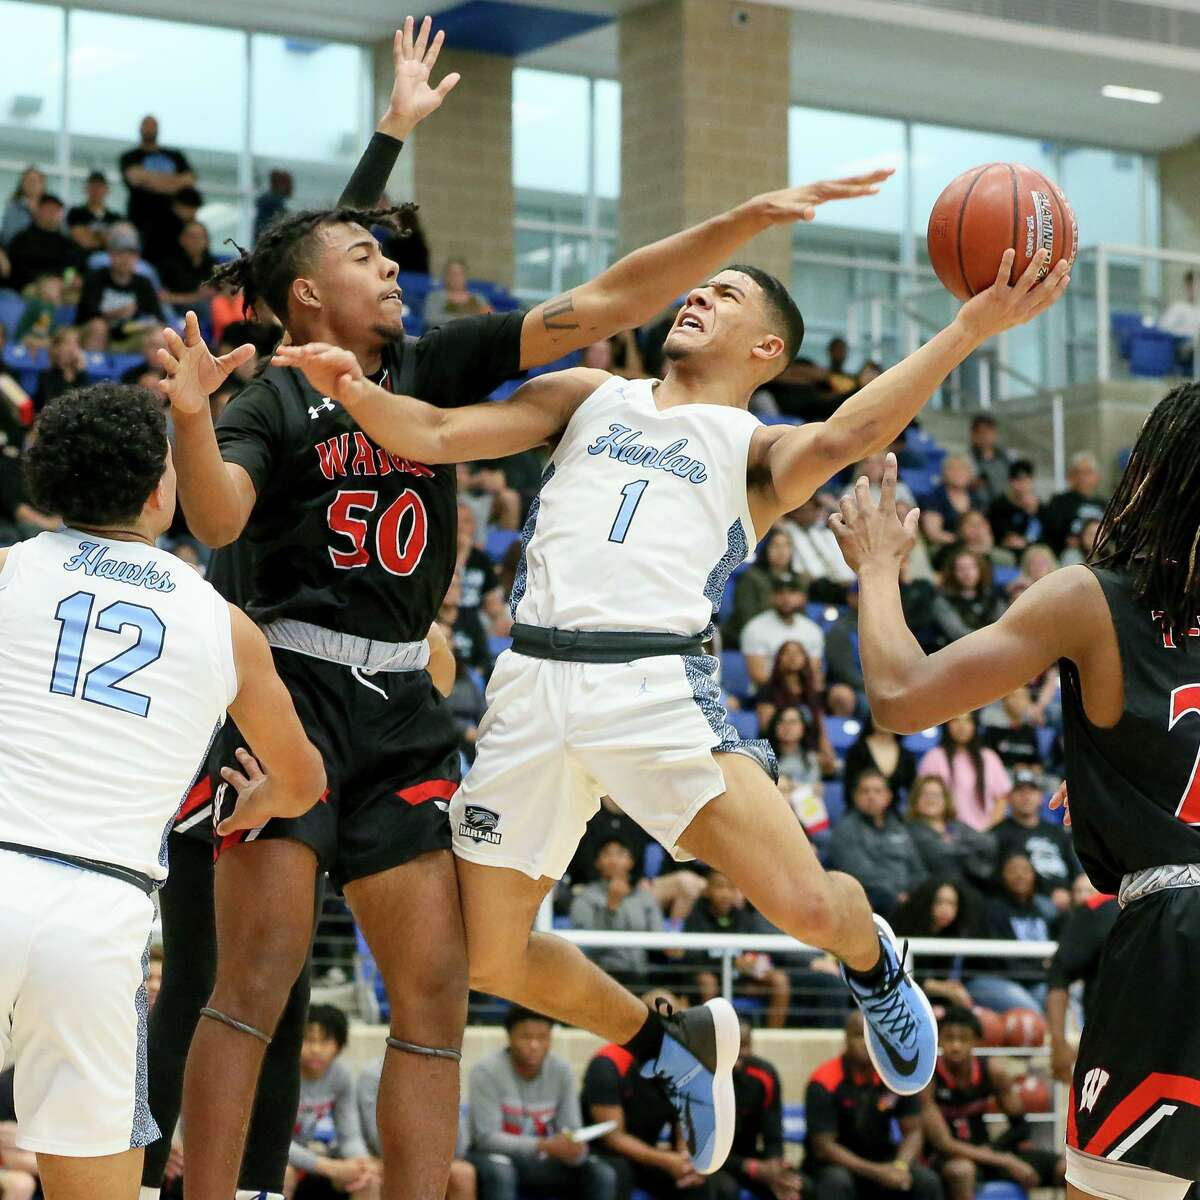 Wagner's Joshua Cobbs (50) tries to block a shot by Harlan's Jalen Mangum (1) in the first half of their Class 5A Regional final game at Northside Gym on Saturday, March 7, 2020. Wagner advanced to the state tournament with a 64-48 victory over Harlan.